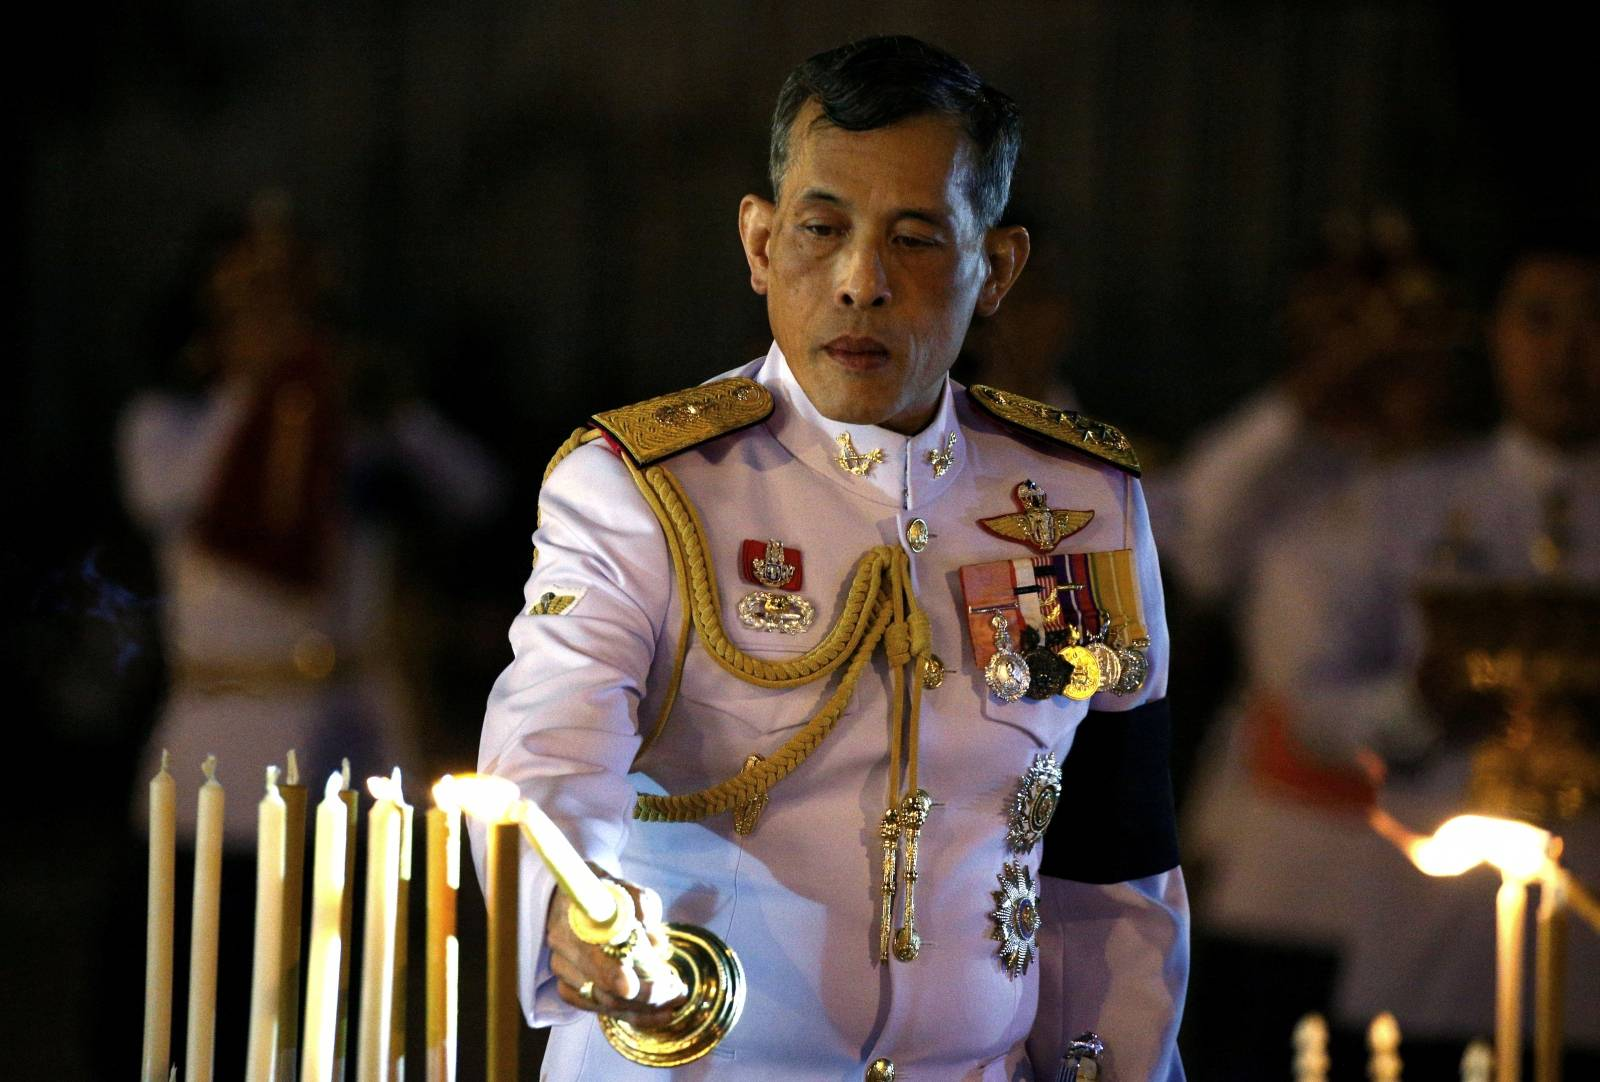 FILE PHOTO: Thailand's Crown Prince Maha Vajiralongkorn attends an event commemorating the death of King Chulalongkorn, known as King Rama V, as he joins people during the mourning of his father, the late King Bhumibol Adulyadej